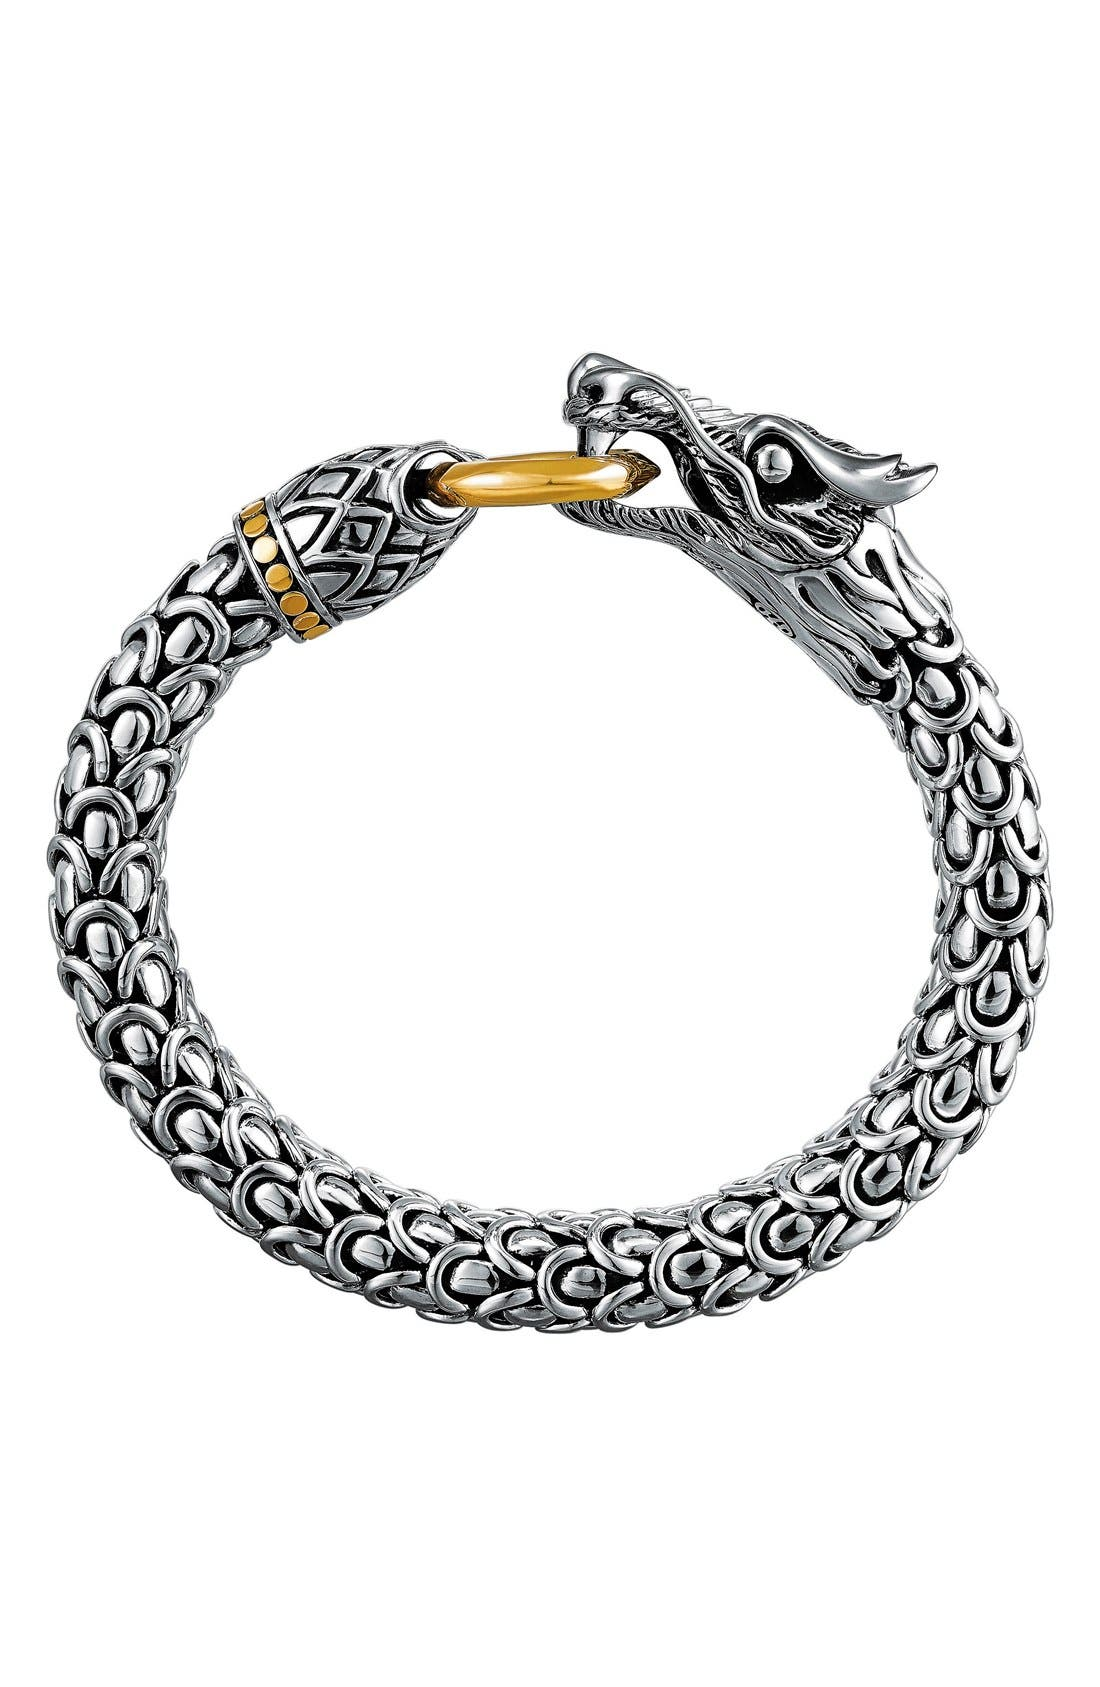 'Naga' Dragon Bracelet,                         Main,                         color, SILVER/ GOLD